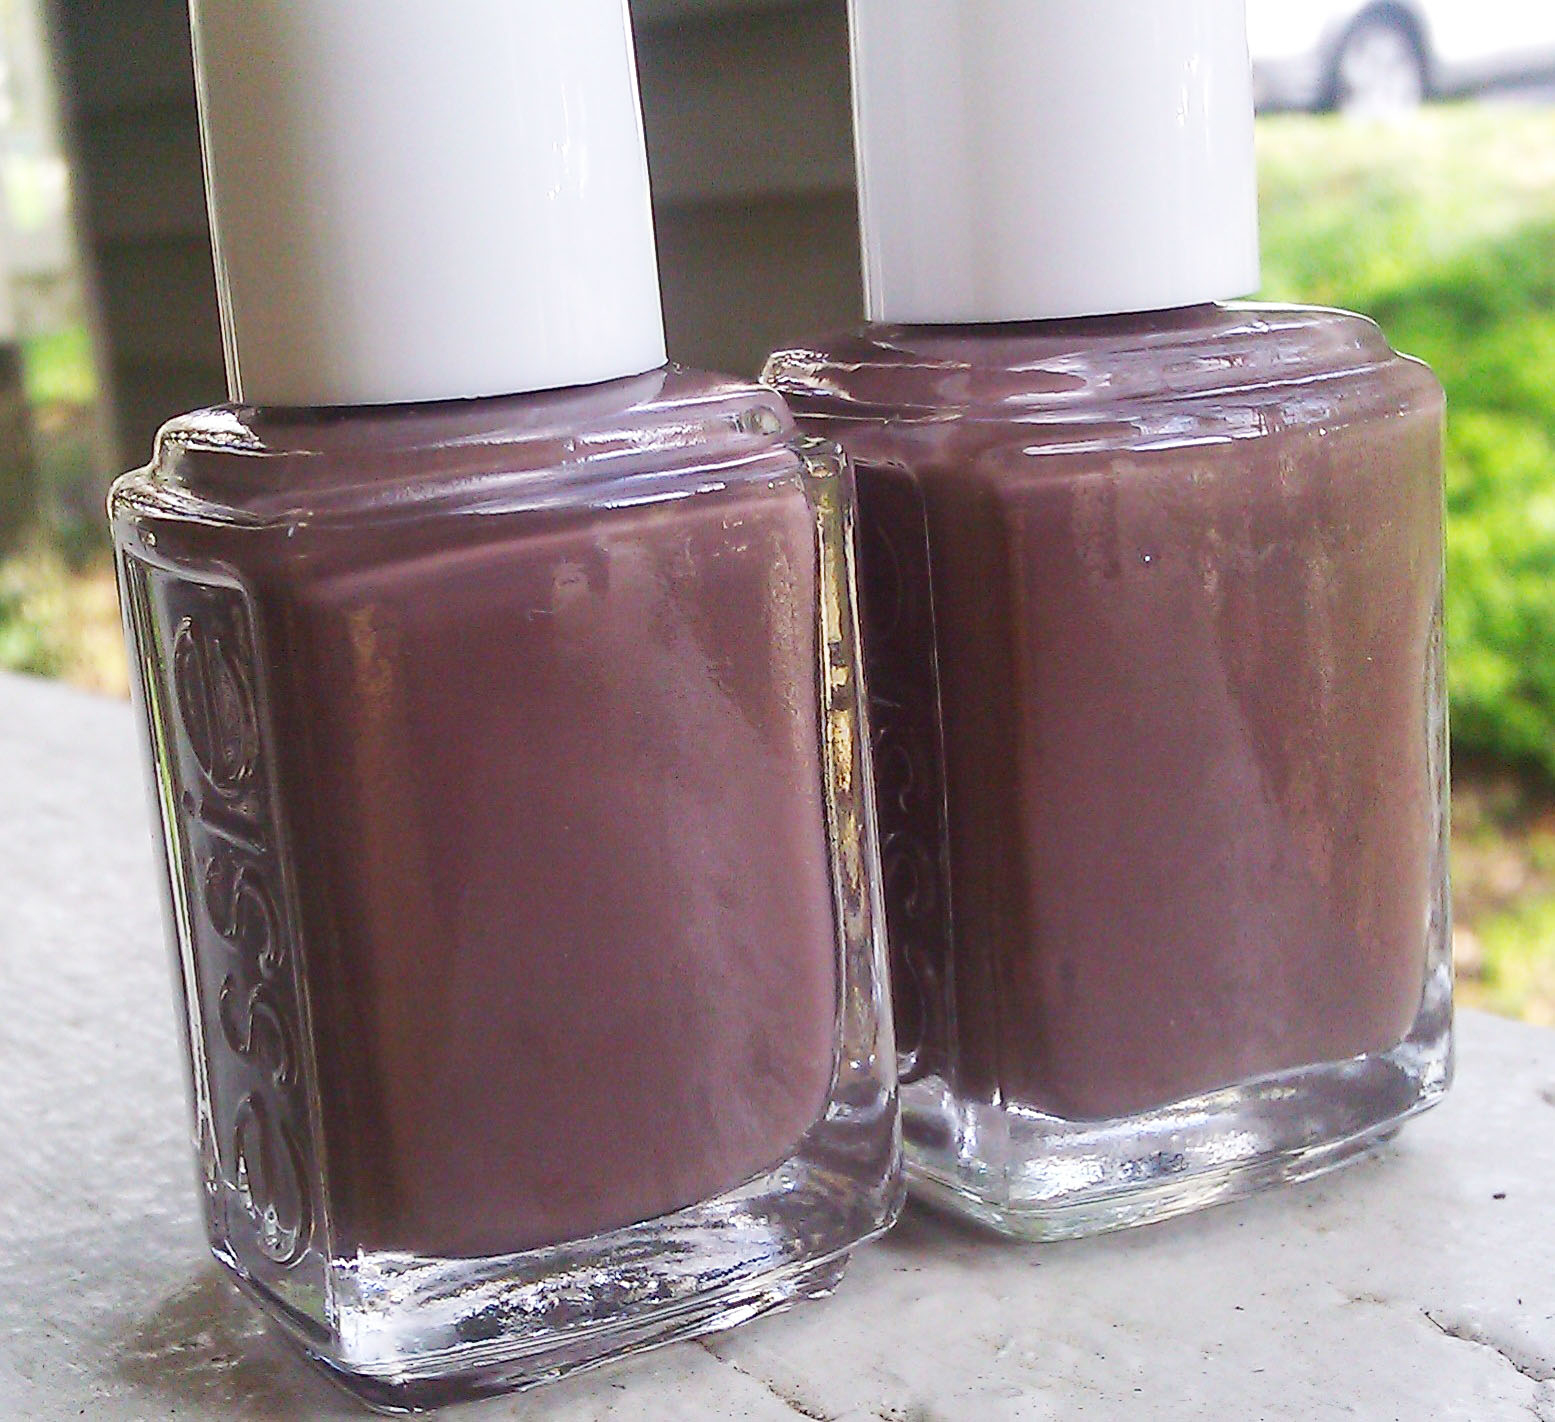 Polish or Perish: Creamy & Delicious - Essie Hot Coco